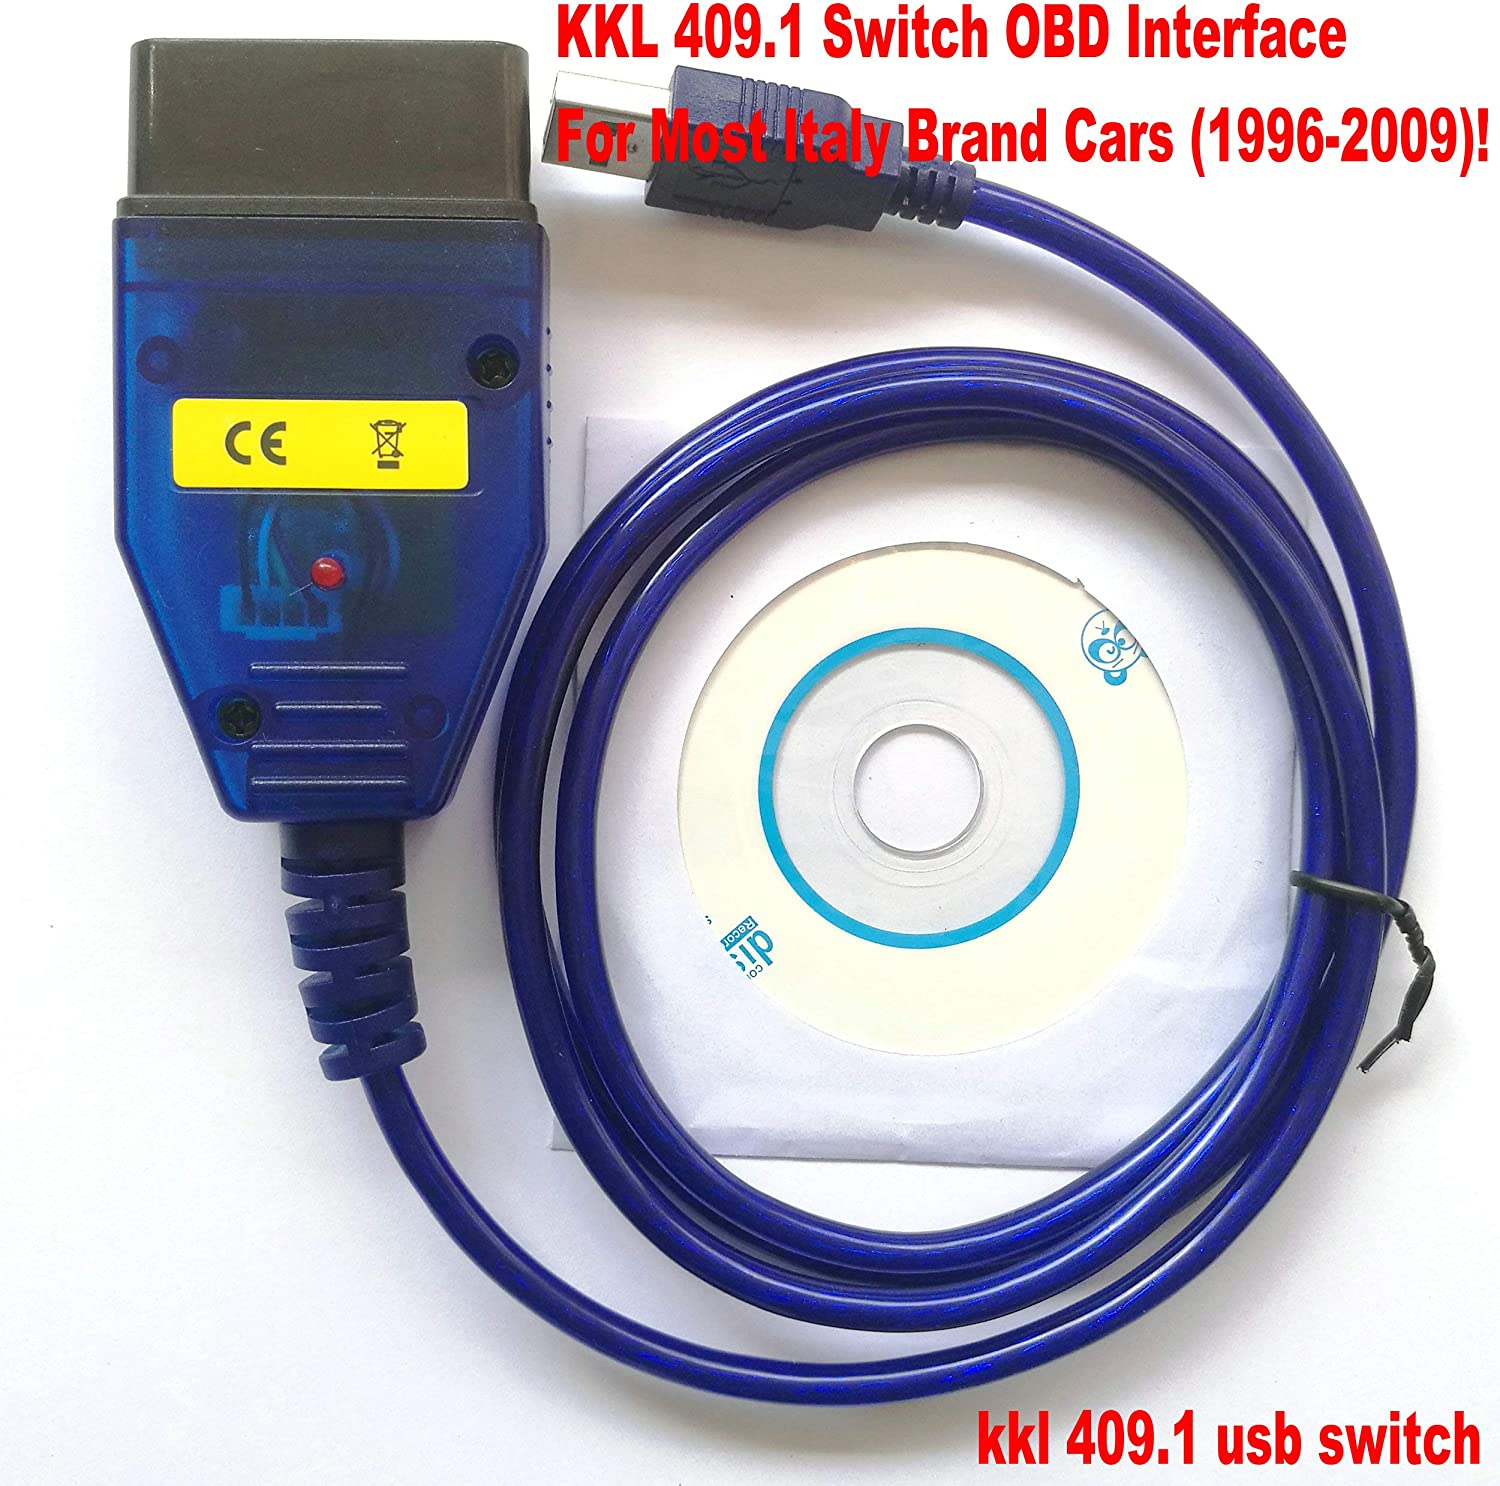 OTKEFDI KKL 409.1 OBD Switch Lead,Supports Kline Cars